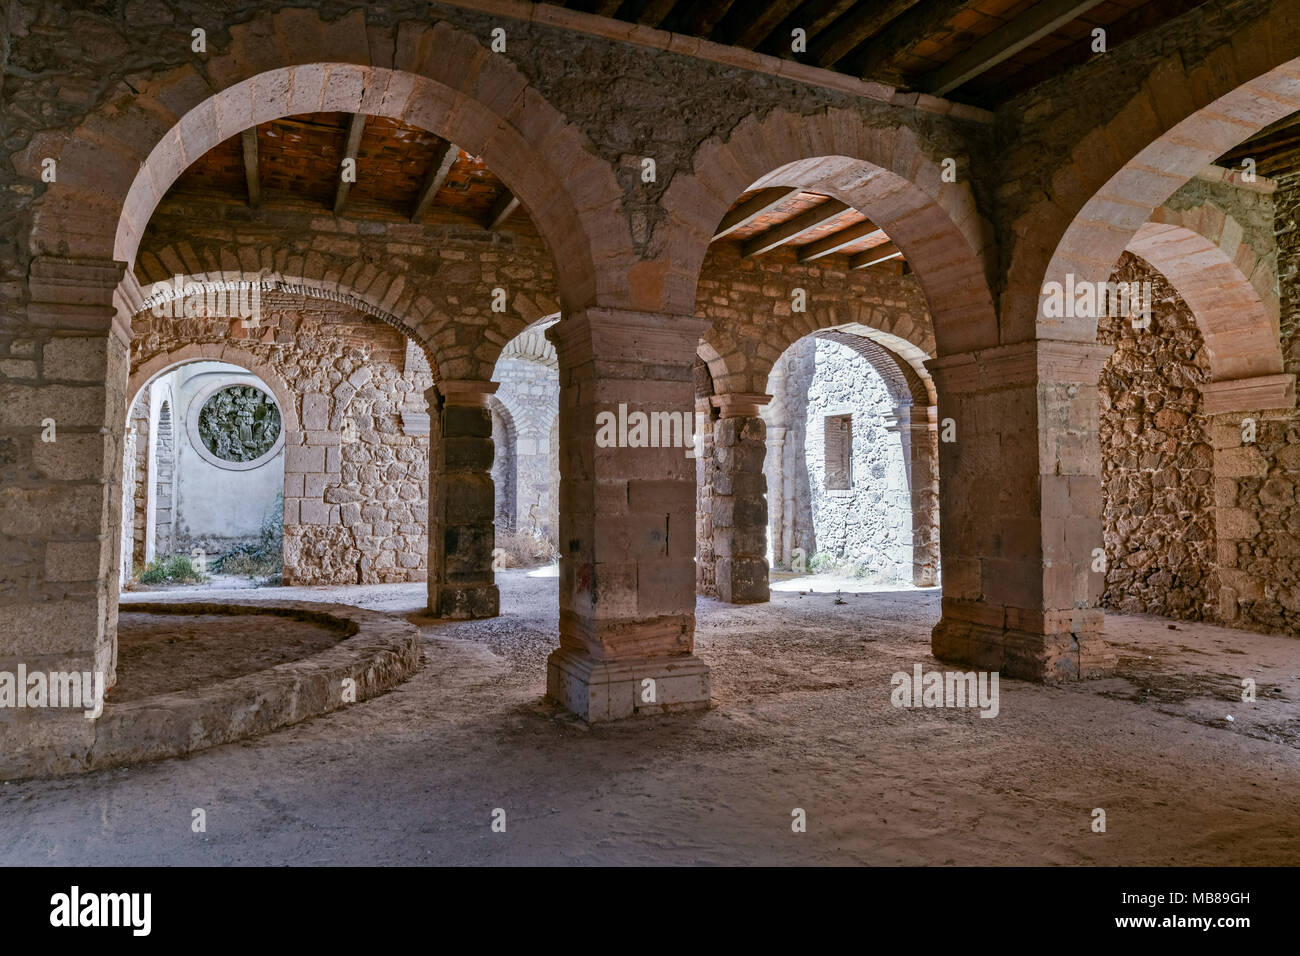 Stables under the fading Hacienda de Jaral de Berrio in Jaral de Berrios, Guanajuato, Mexico. The abandoned Jaral de Berrio hacienda was once the largest in Mexico and housed over 6,000 people on the property and is credited with creating Mescal. - Stock Image